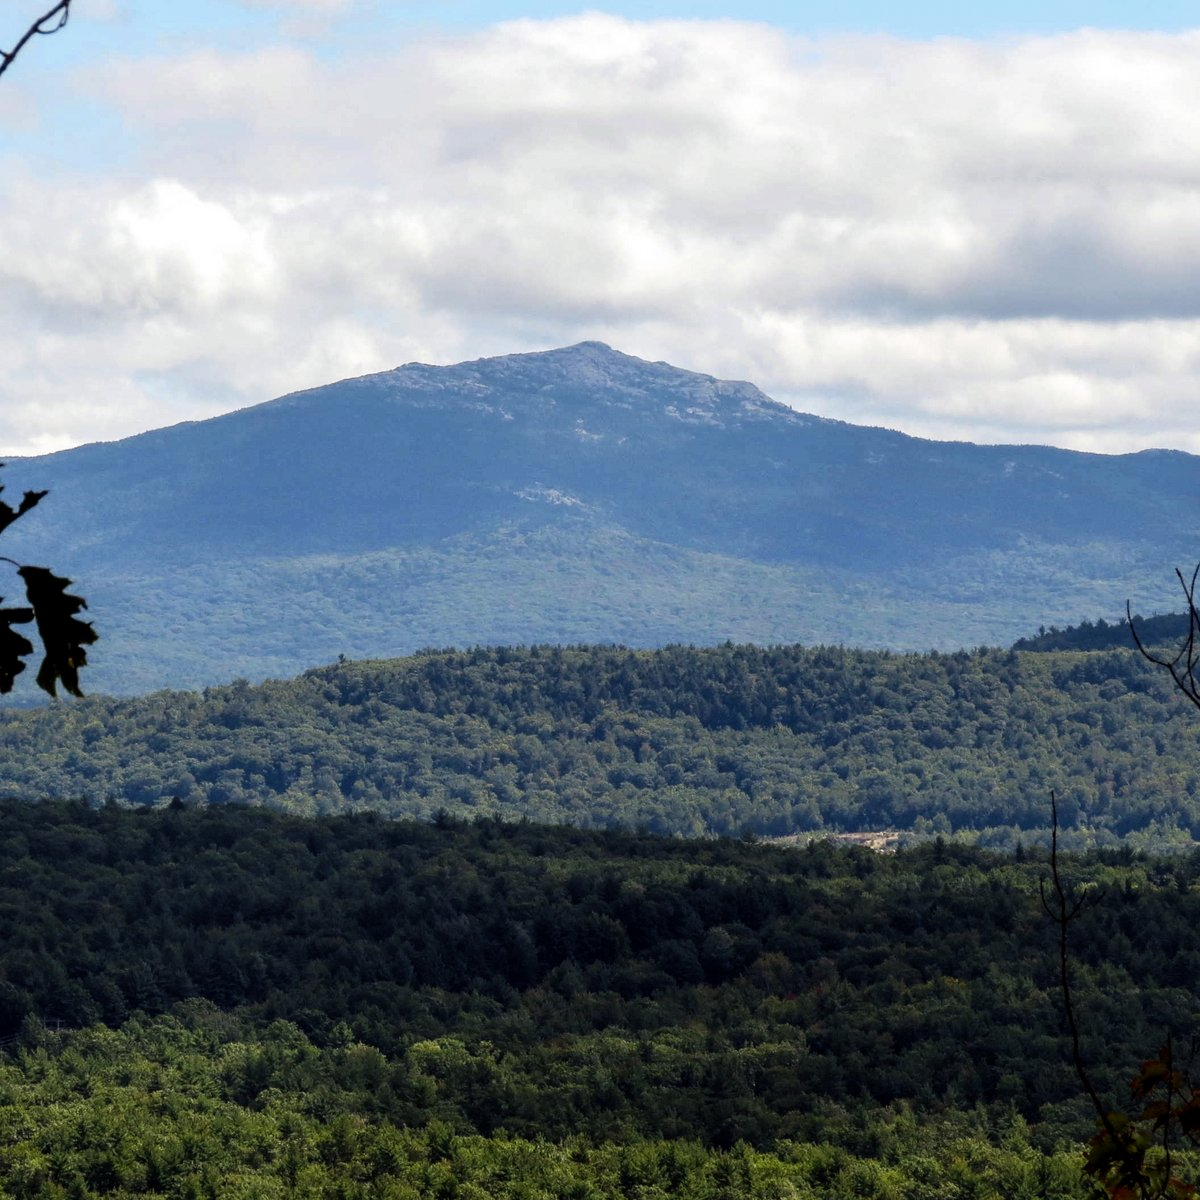 12. Mount Monadnock From Mount Caesar